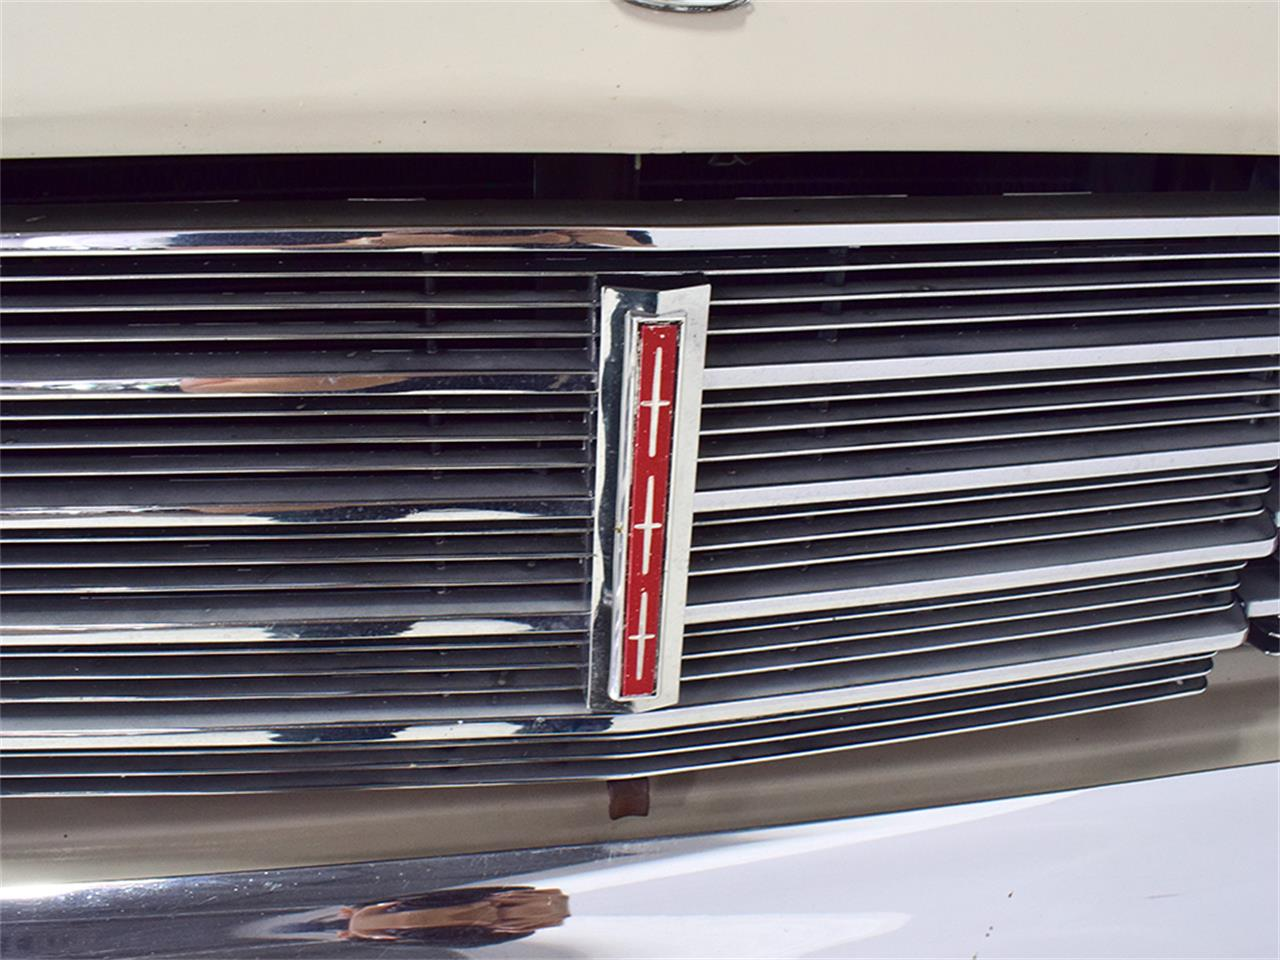 1965 Mercury Montclair for sale in Macedonia, OH – photo 17